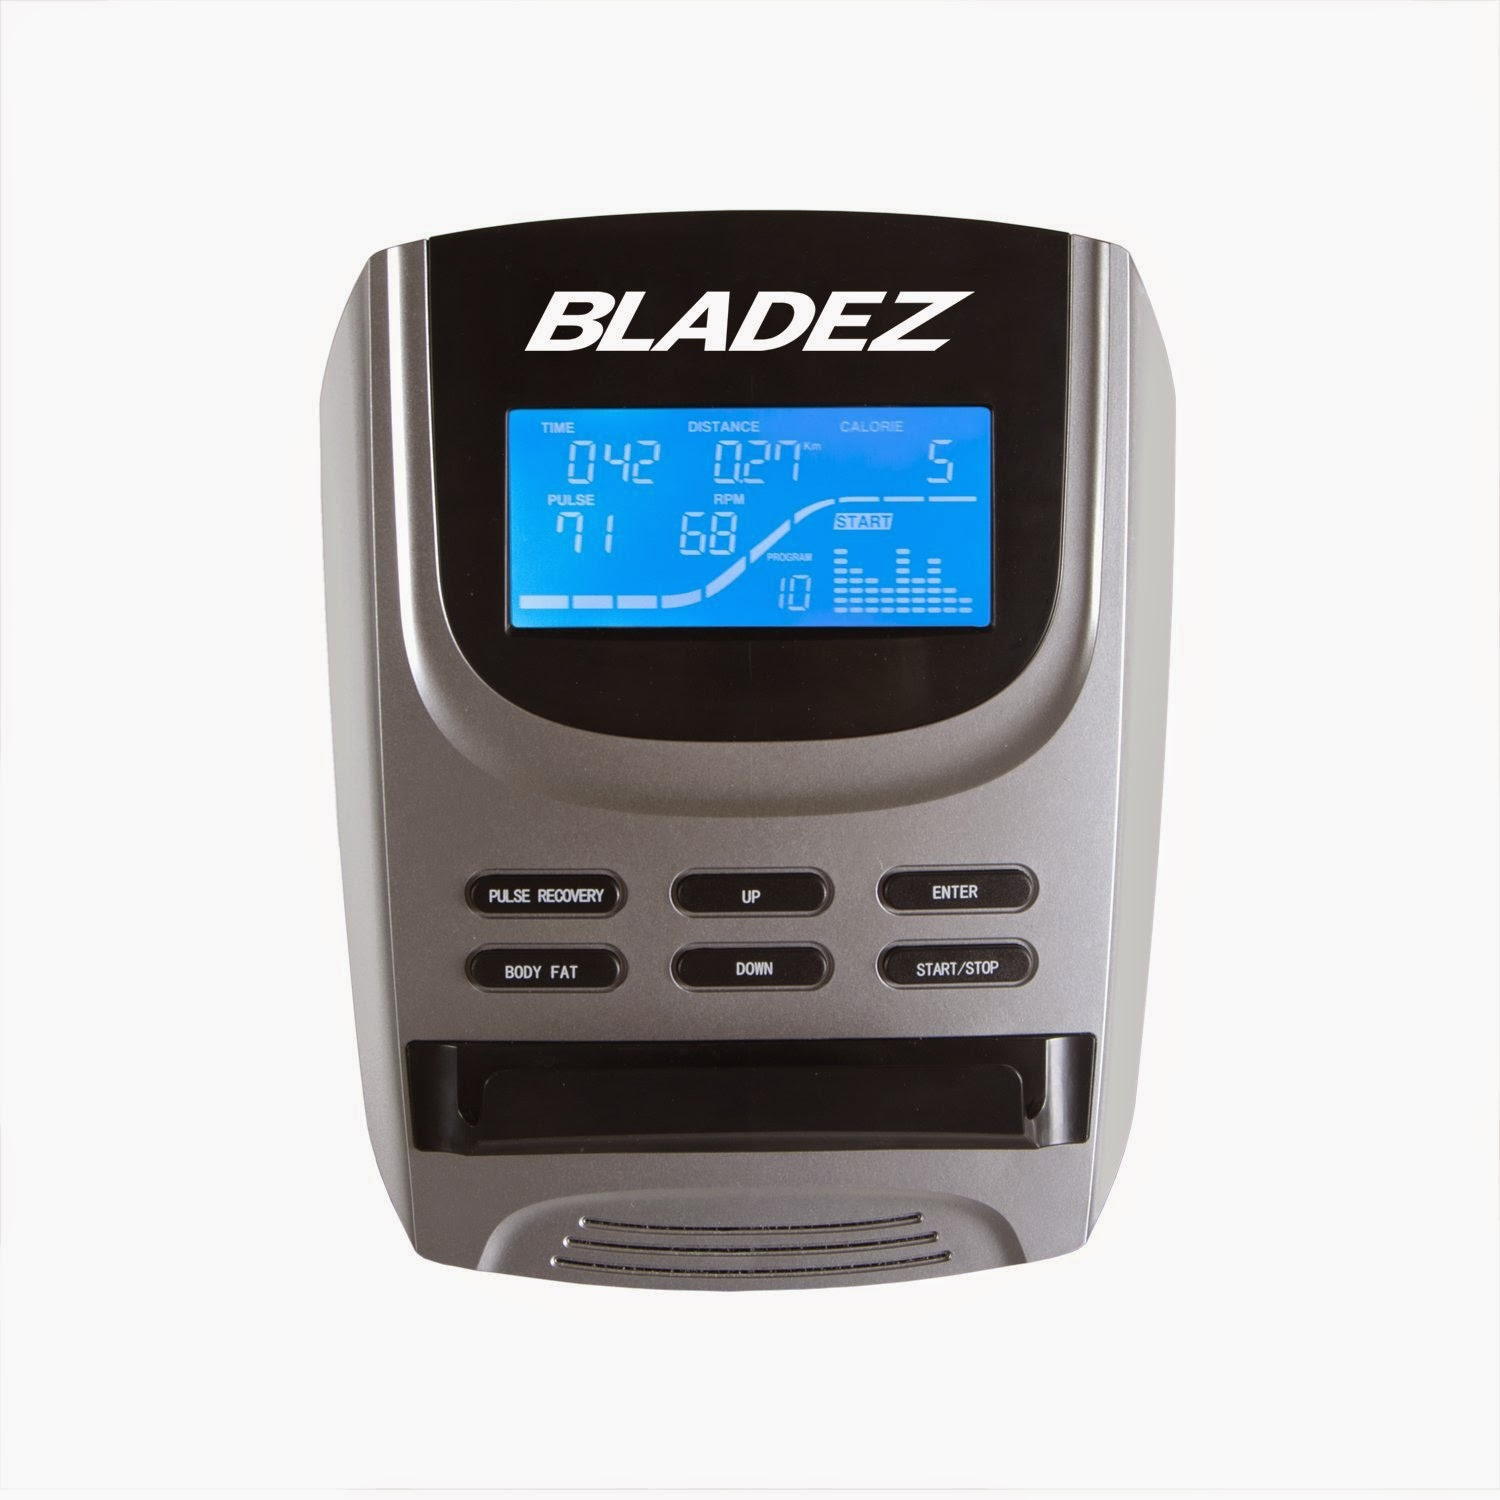 Bladez Fitness R300 blue backlit LCD display